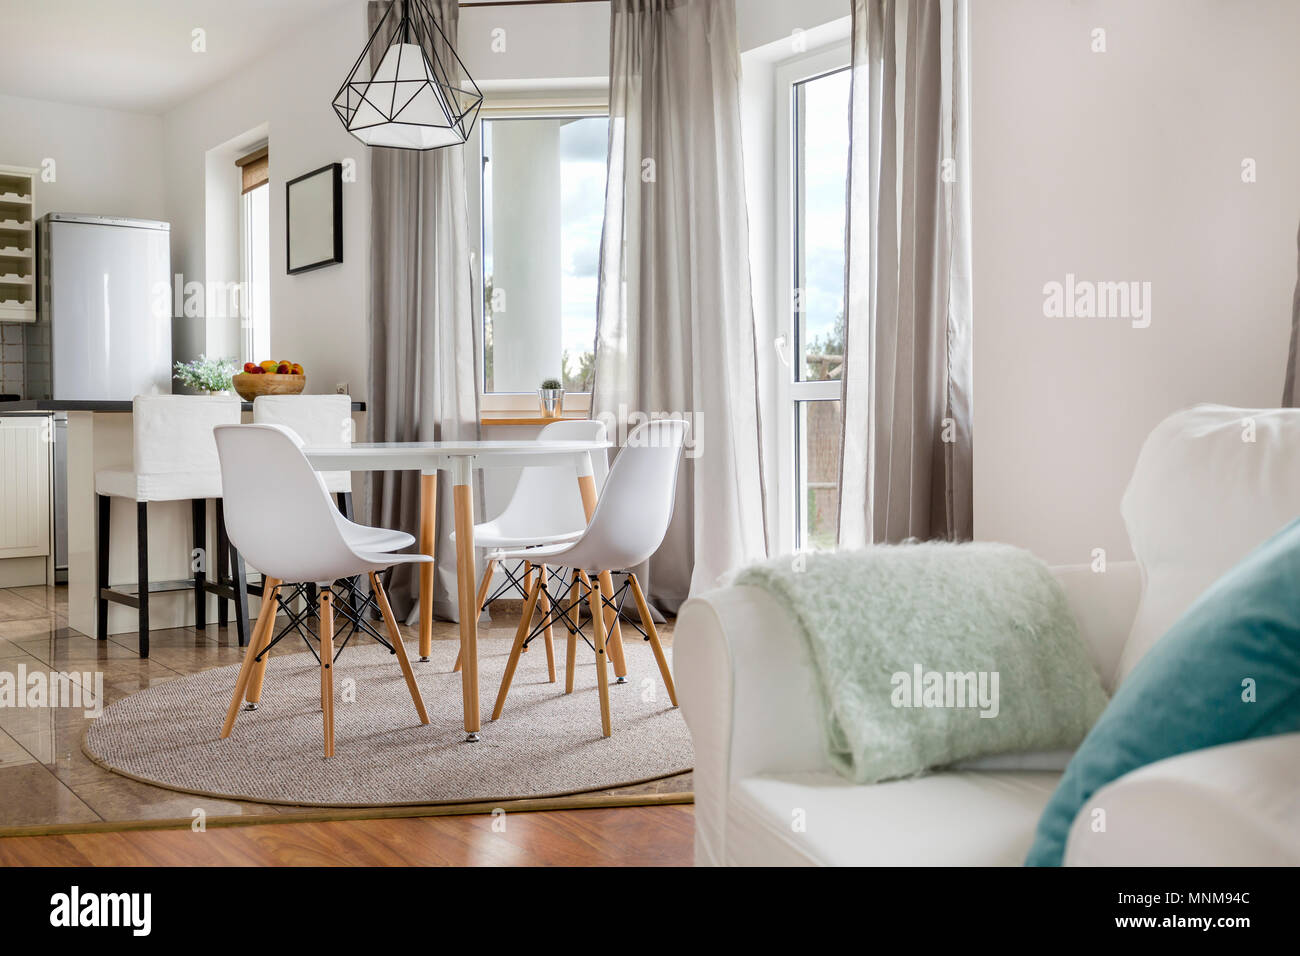 New flat with round table, white chairs and open kitchen Stock Photo